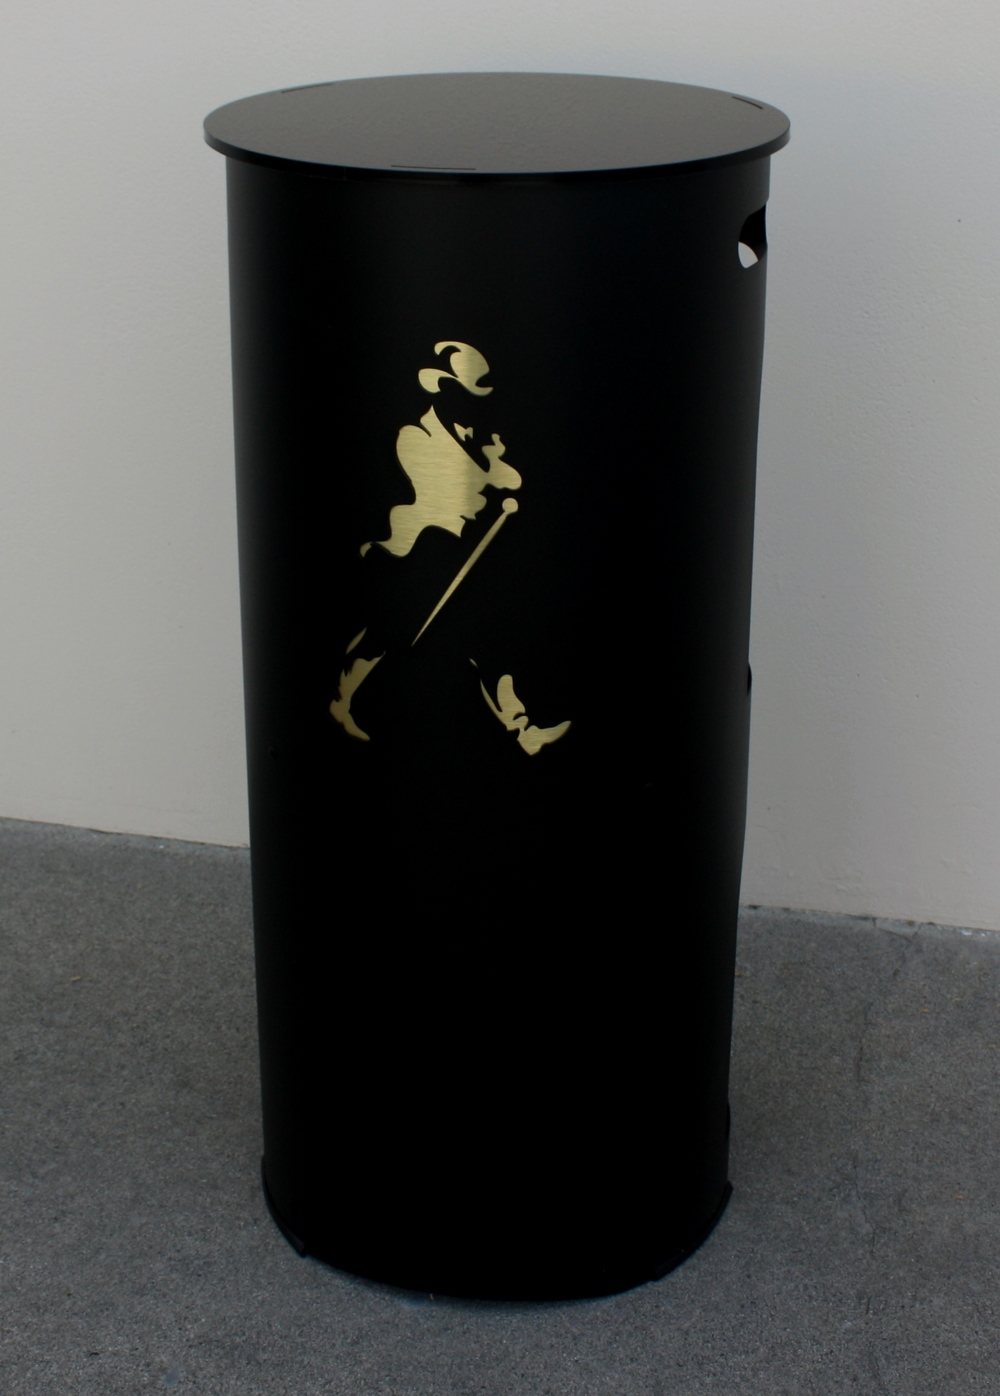 Johnnie Walker Man Cave Bar 029.JPG